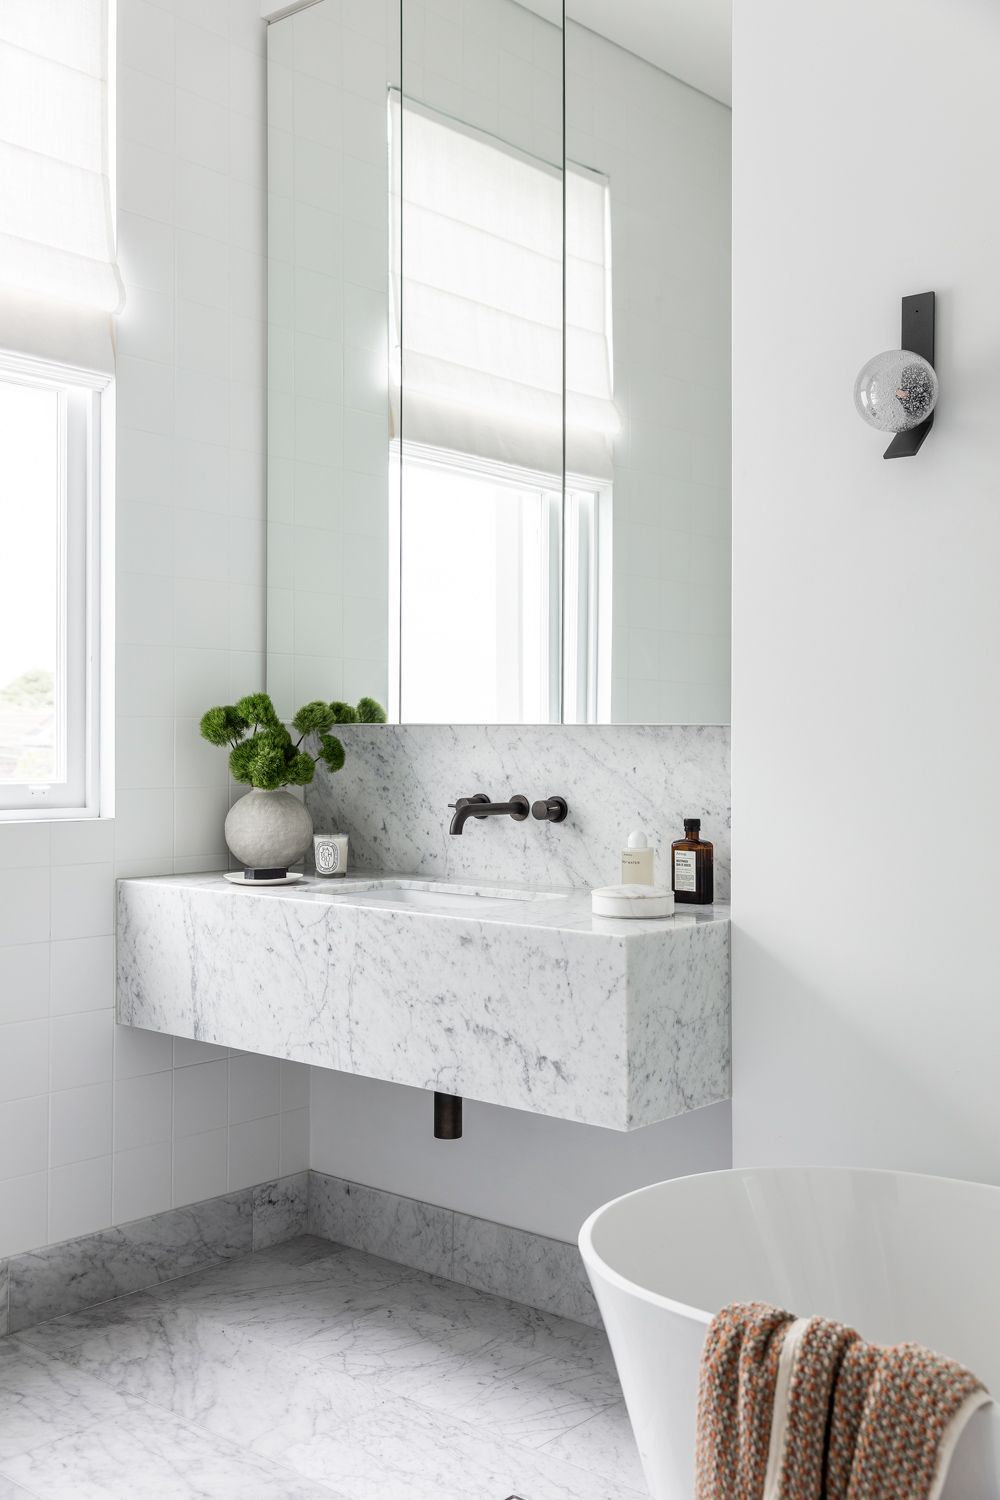 Pin By Ingrid Bender On 409 Oxford In 2020 Annandale House Victorian Terrace Bathroom Interior Design